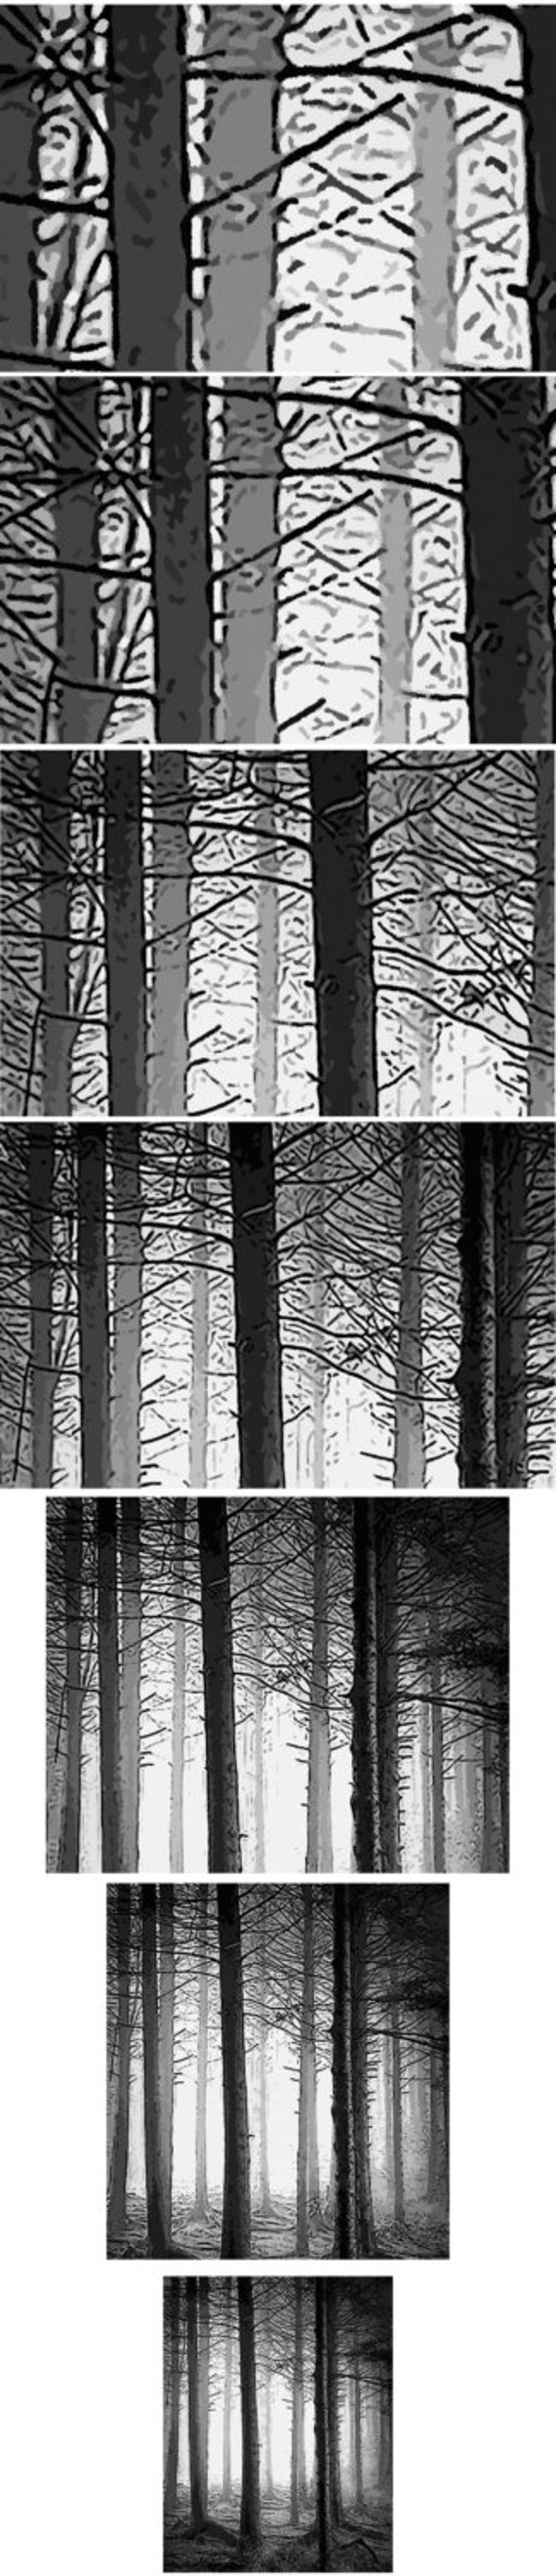 Fifty Shades Of Gray Woodland Forest Trees Shower Curtain Fabric Extra Long Window Panel Kids Bathroom Decor Custom Valance Bathmat Towel